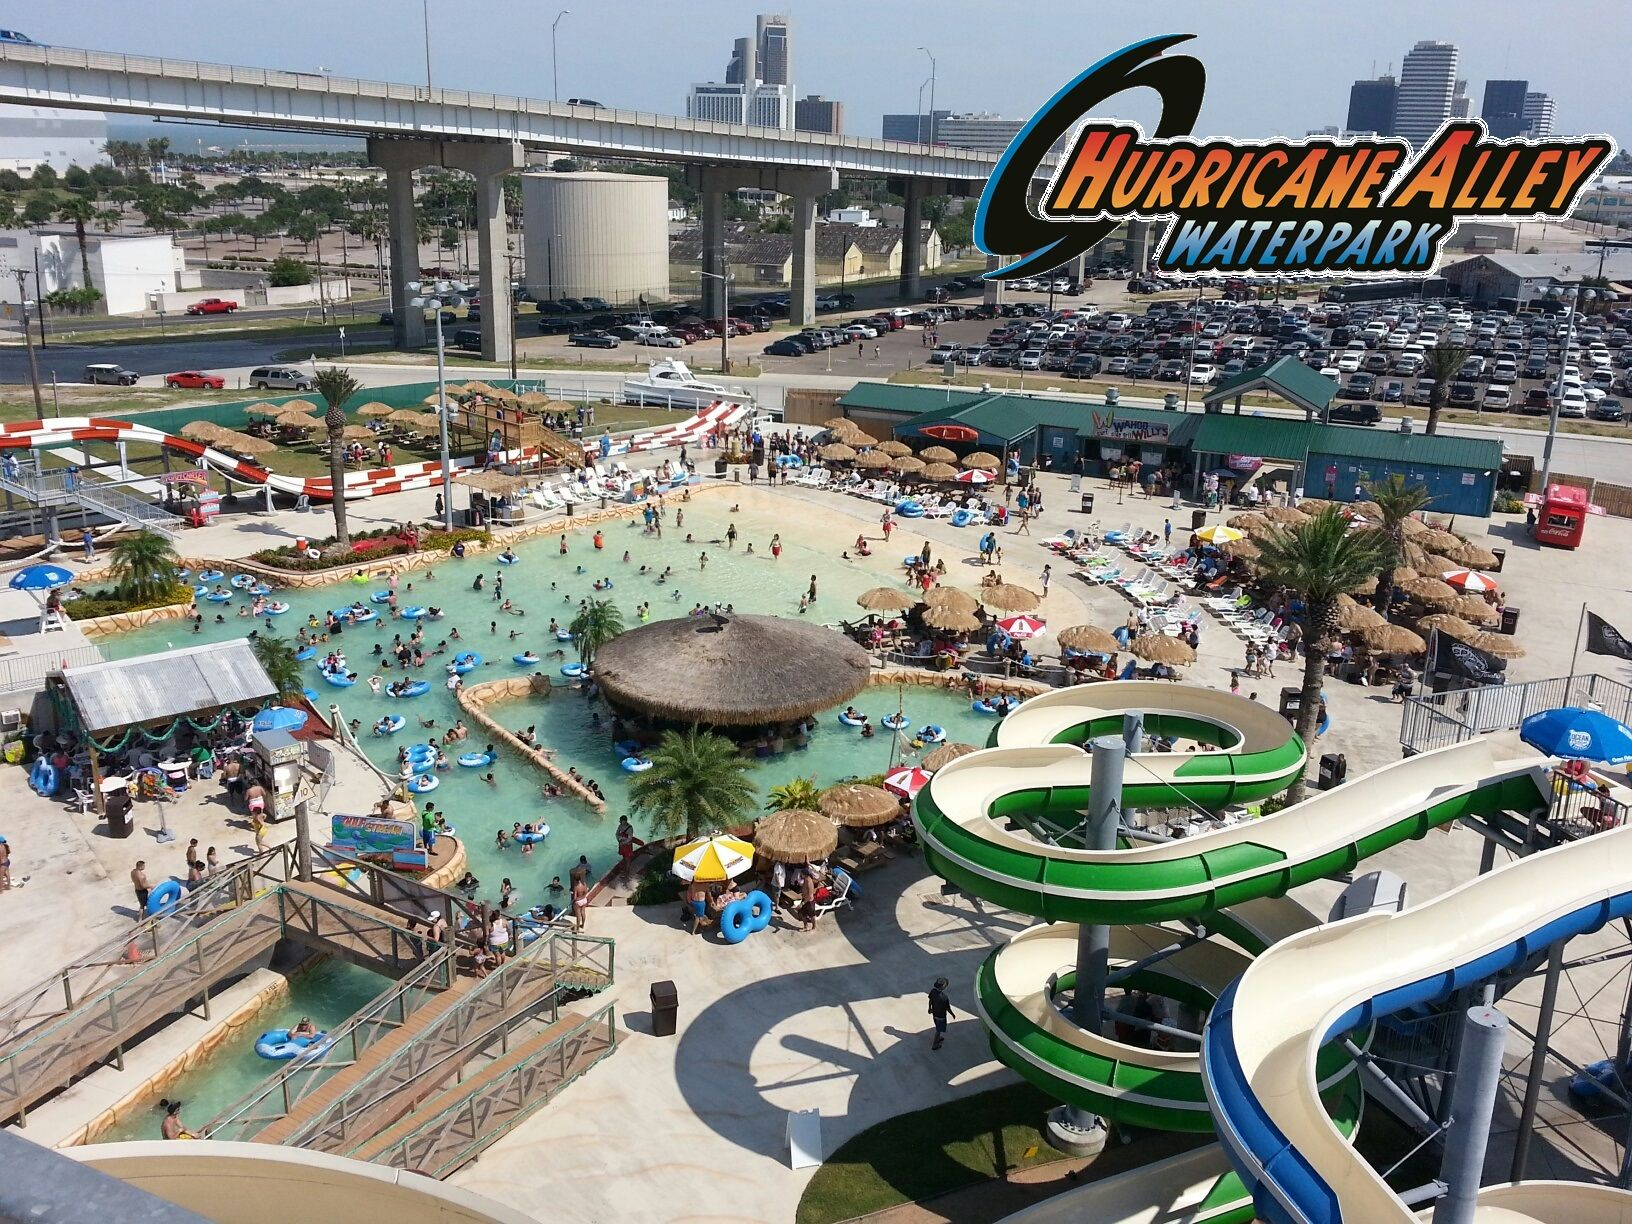 The View From The Top Of Hurricane Alley Waterpark S Cat5 It Is Out 6 Story Waterslide Sure To Give You A Thrill Hacctx Hu Water Park Trip Hurricane Alley